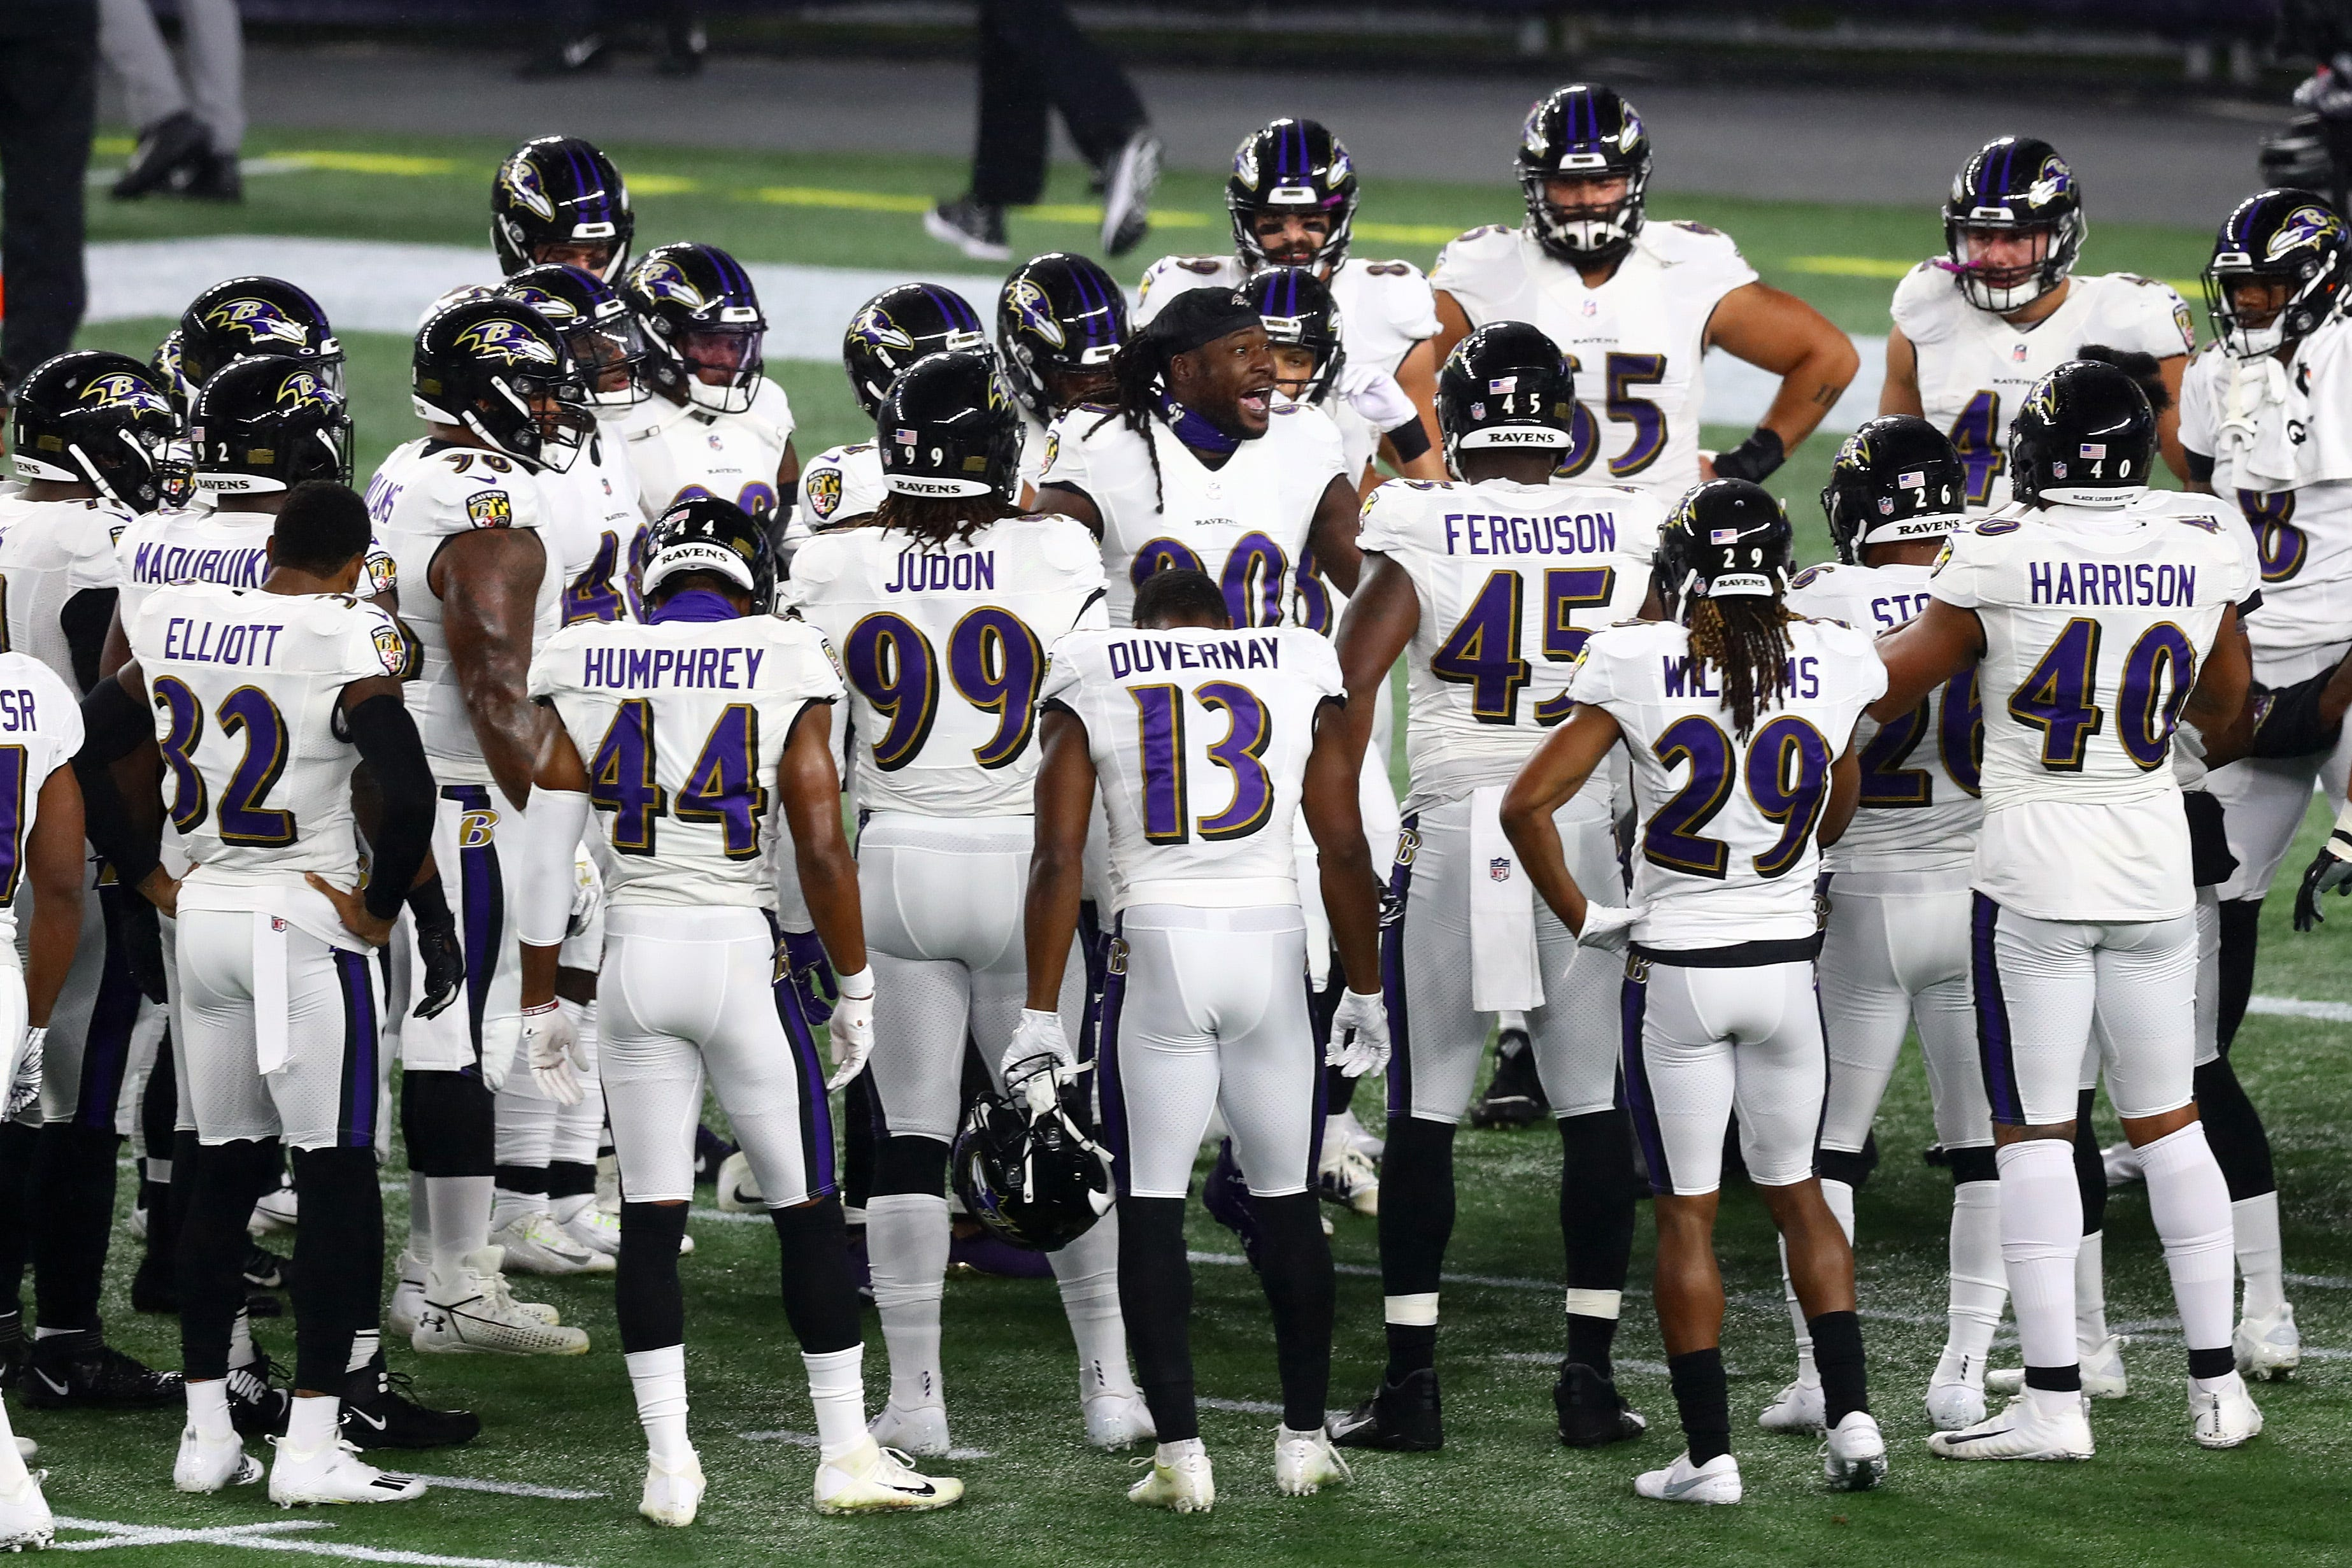 NFL COVID-19 updates: Ravens announce multiple individuals tested positive